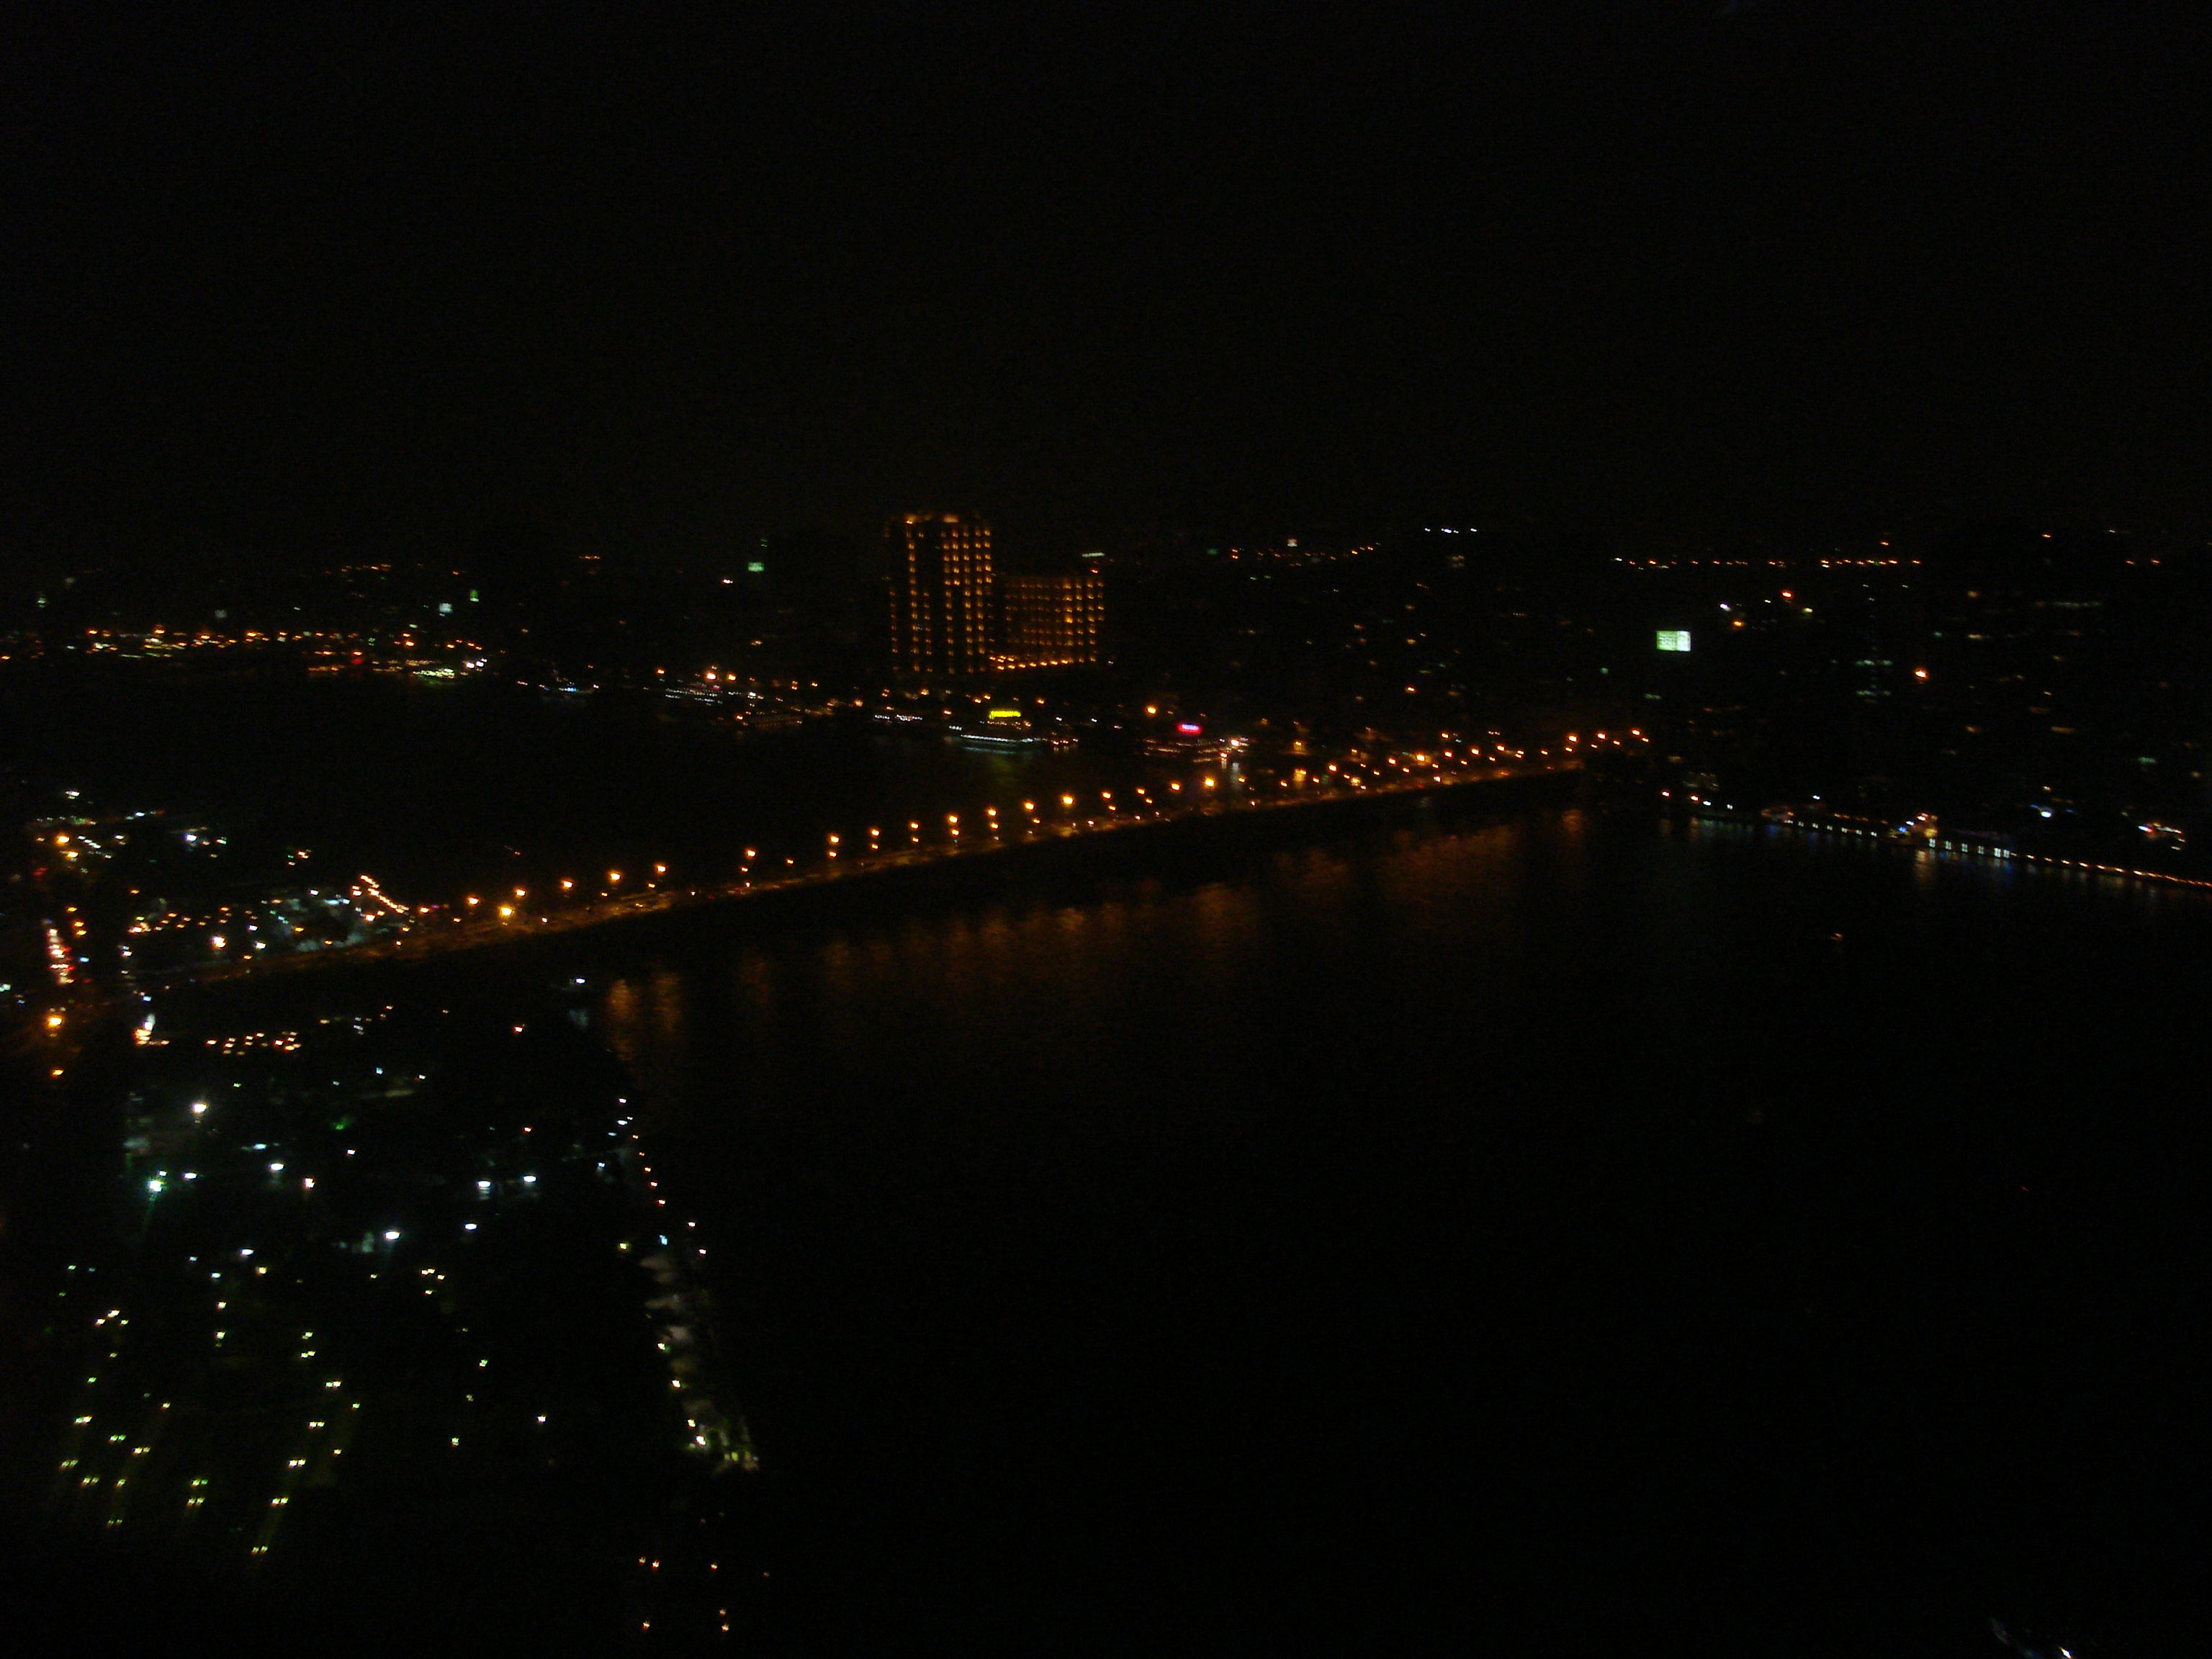 Ciudad en The Revolving Restaurant - Grand Nile Tower